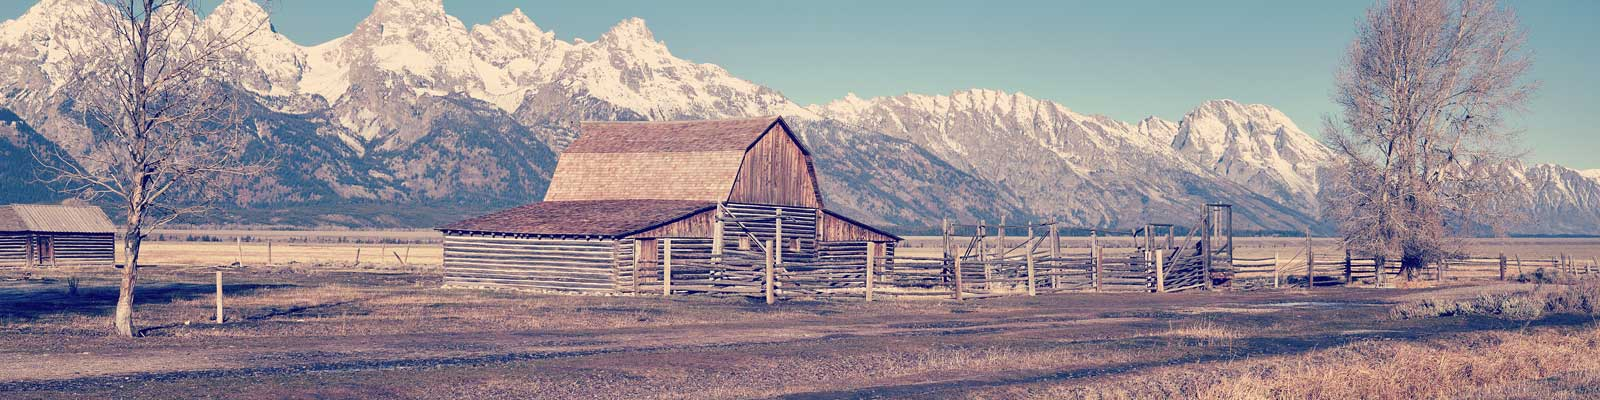 Pictured: A ranch and mountains in Wyoming.